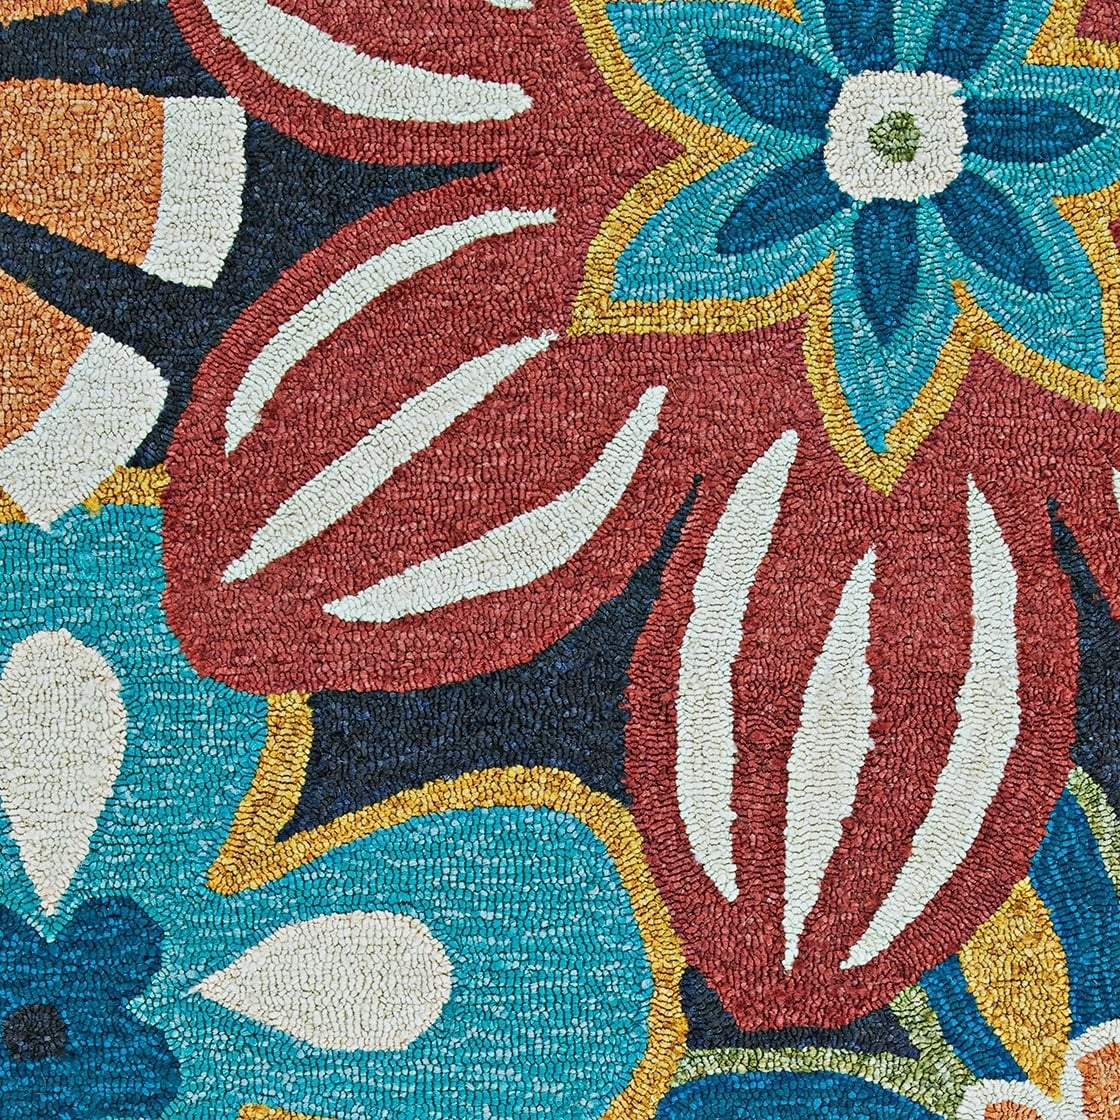 26388bb99508 Shop Miami Flower Power Navy-Multicolor Indoor/Outdoor Area Rug - 5'6